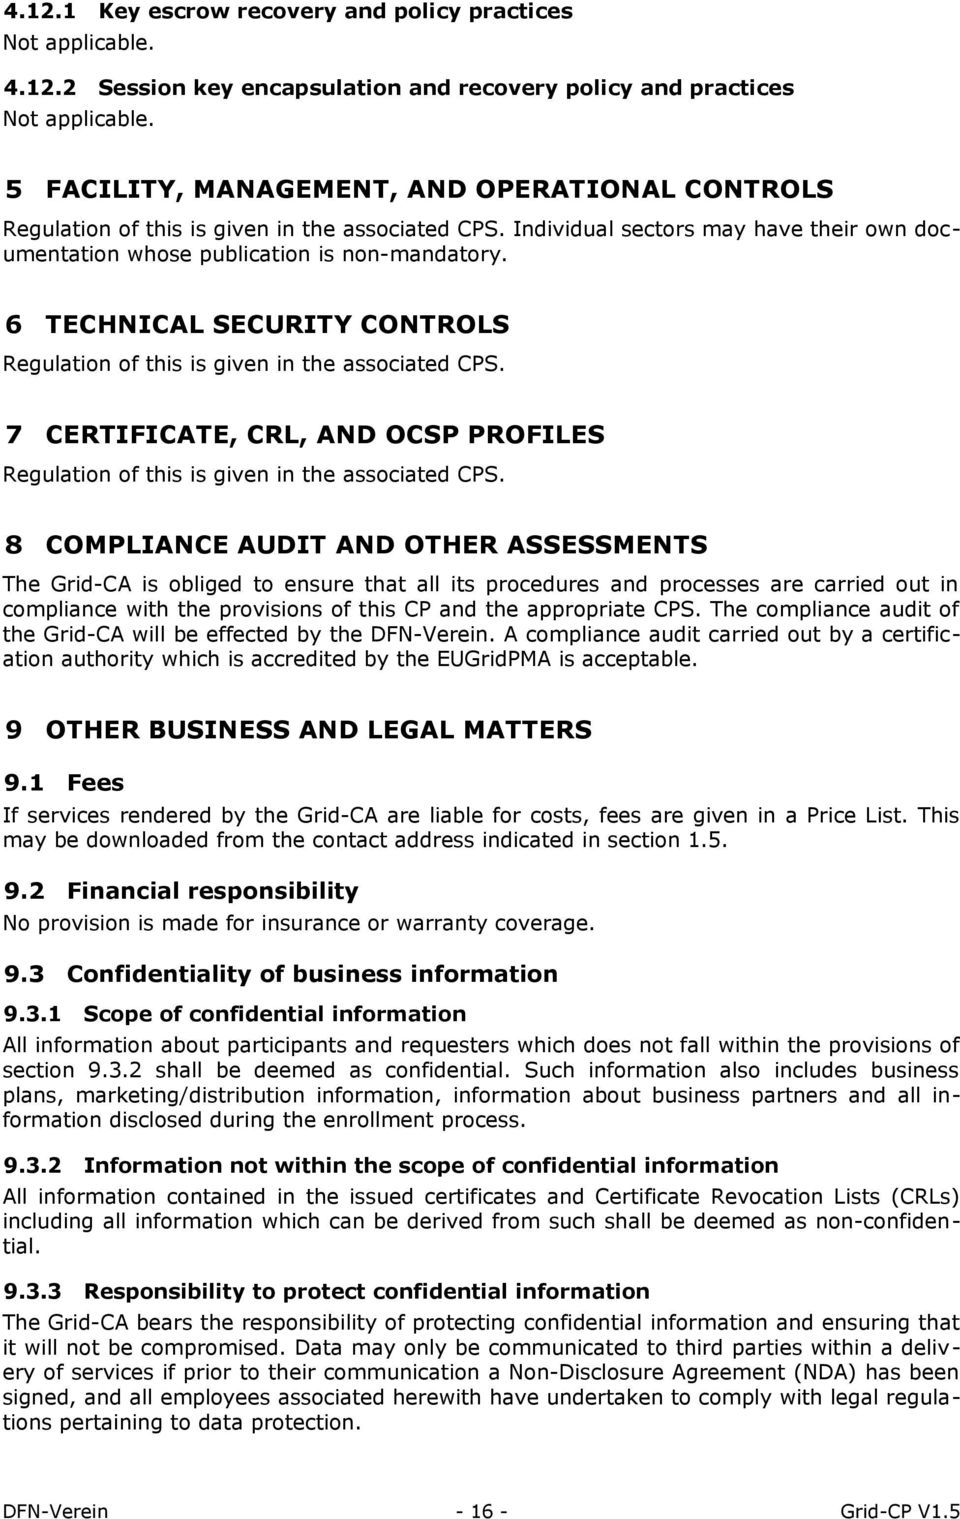 6 TECHNICAL SECURITY CONTROLS Regulation of this is given in the associated CPS. 7 CERTIFICATE, CRL, AND OCSP PROFILES Regulation of this is given in the associated CPS.